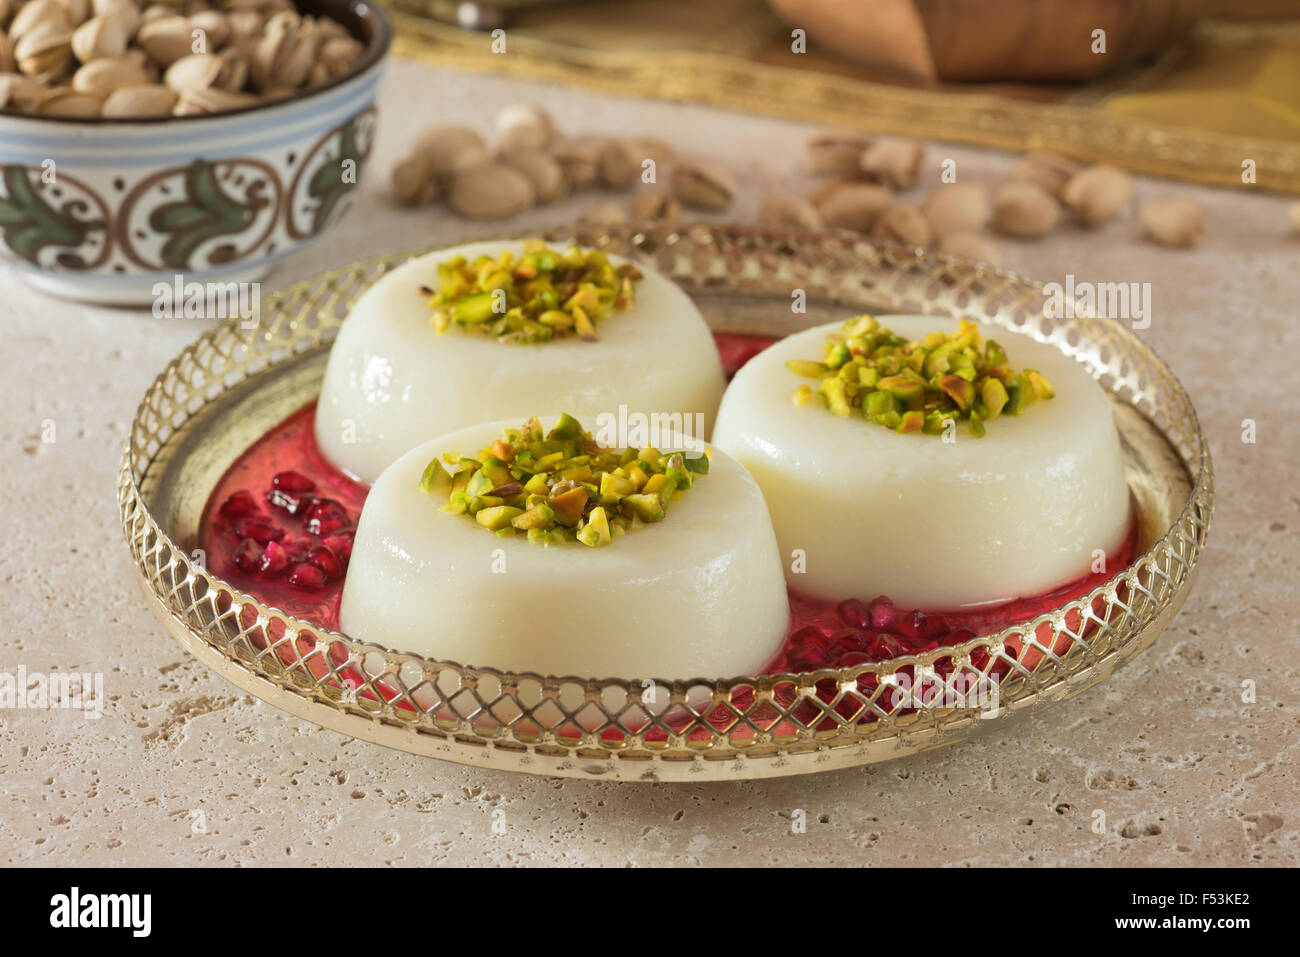 Mouhalabieh. Dessert lait libanais. L'alimentation du Liban Photo Stock